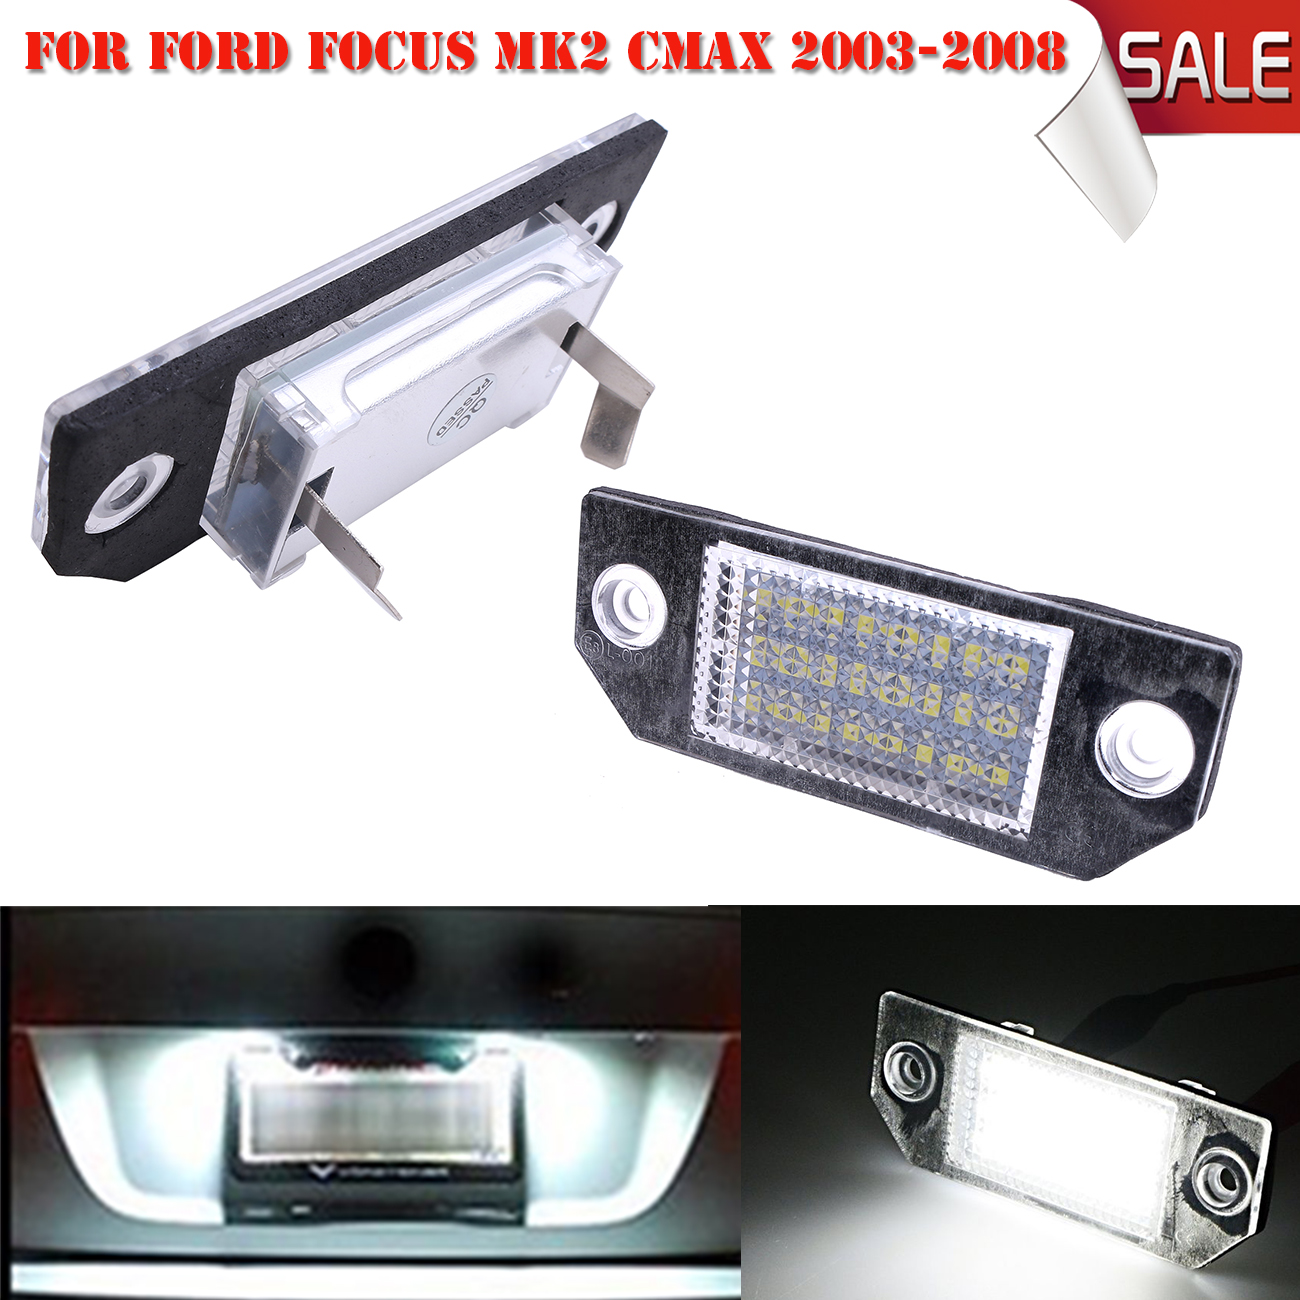 1 pair license plate light replacement lamps for ford focus mk2 c max mk1 2003